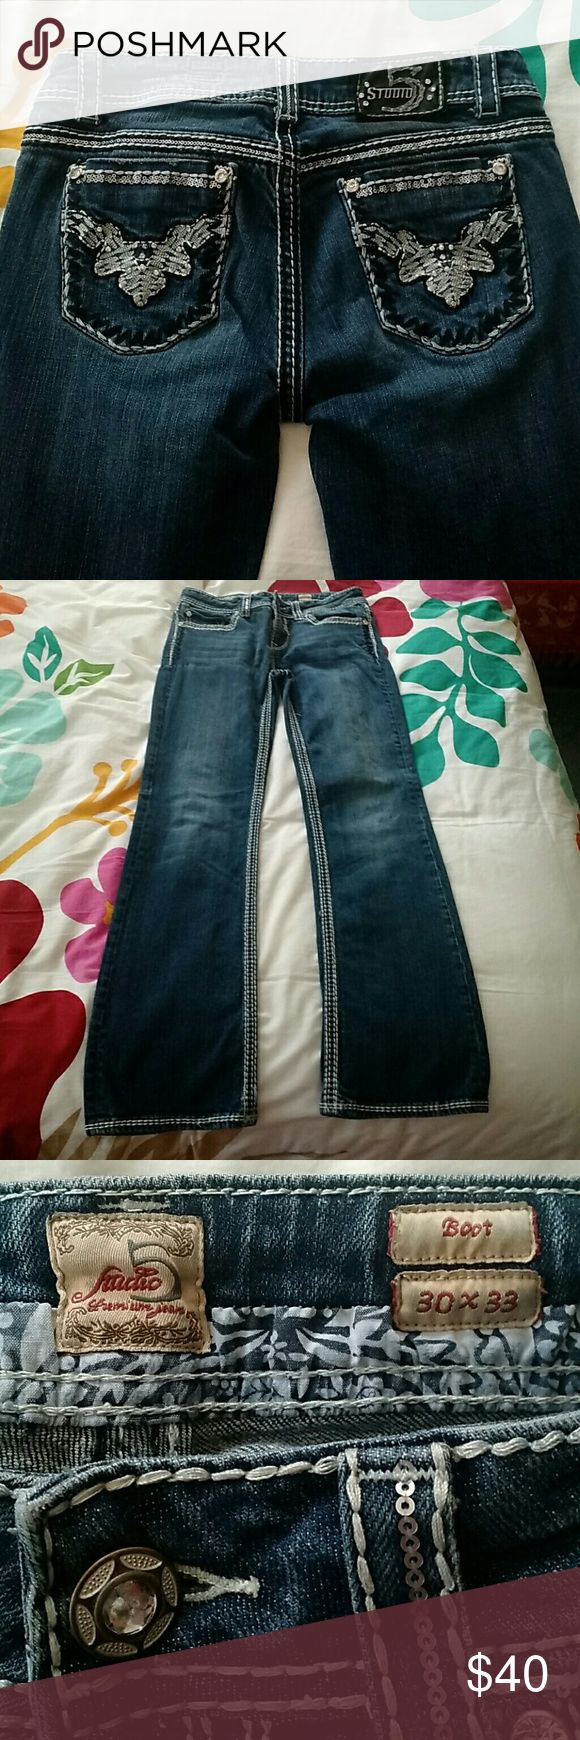 💎 Studio 5 Rhinestone Bling Women's Jeans 💎 Denim jeans have decorative contrast seam stitching and rhinestones on back pockets. Boot cut. In like-new condition. Zero fraying. All adornments are intact. Similar quality and look to Miss Me. Studio 5 Jeans Boot Cut